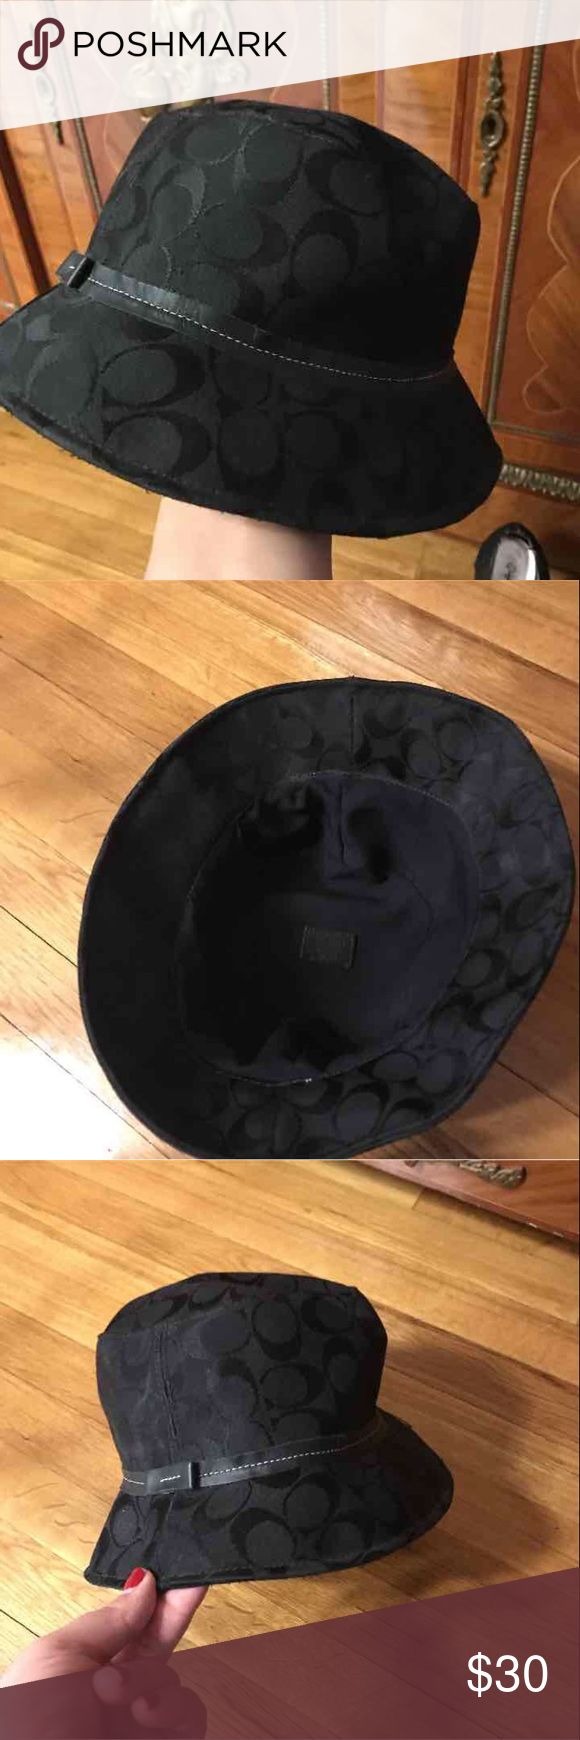 Authentic Coach hat black canvas Received as a gift a few years ago, never worn as I'm not a hat person. Coach Accessories Hats